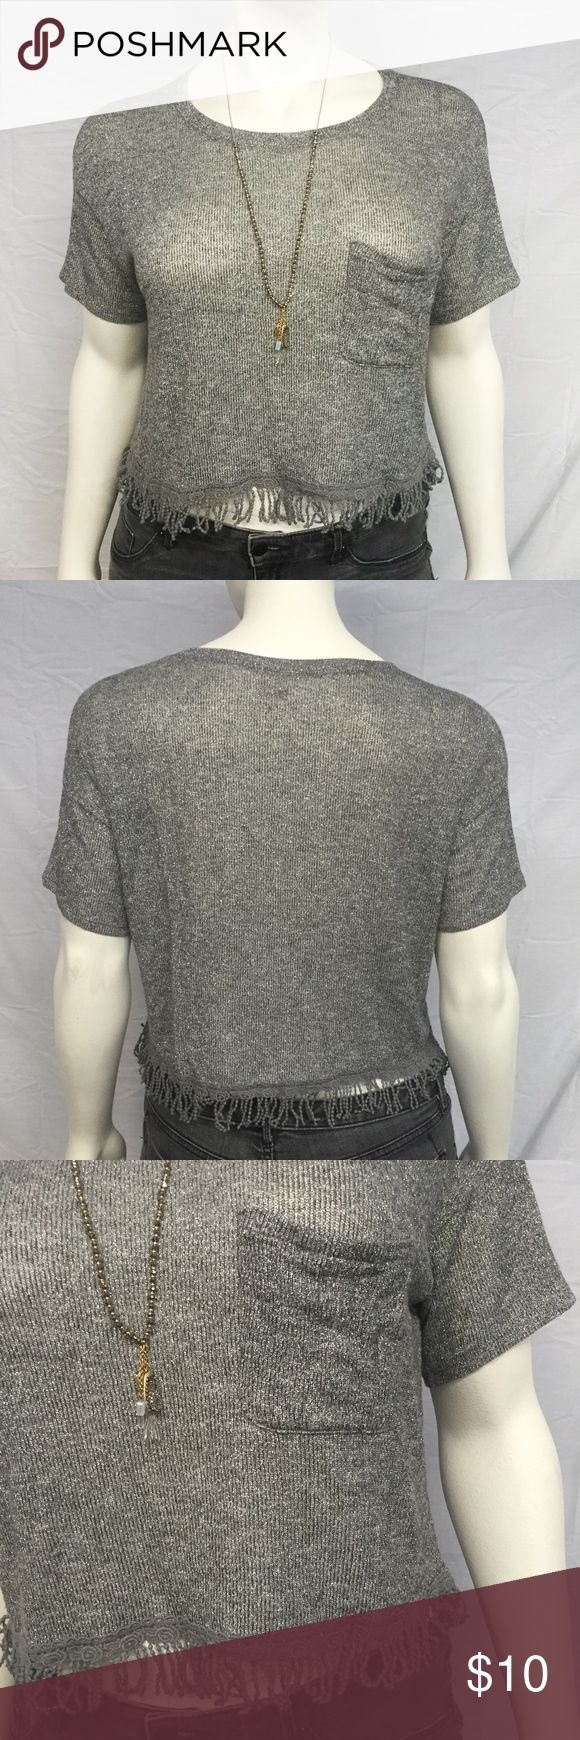 """Hollister Silver Crop Top Cute Hollister crop top with a fringed hem. Fun metallic silver fabric. Left breast pocket. Looks great with high waist black cut offs and strappy sandals! In excellent preowned condition with no damage or wear. Smoke and pet free home. Runs large and is stretchy. 44"""" bust. 20"""" long with fringe. 1 1/2"""" fringe. Hollister Tops Crop Tops"""